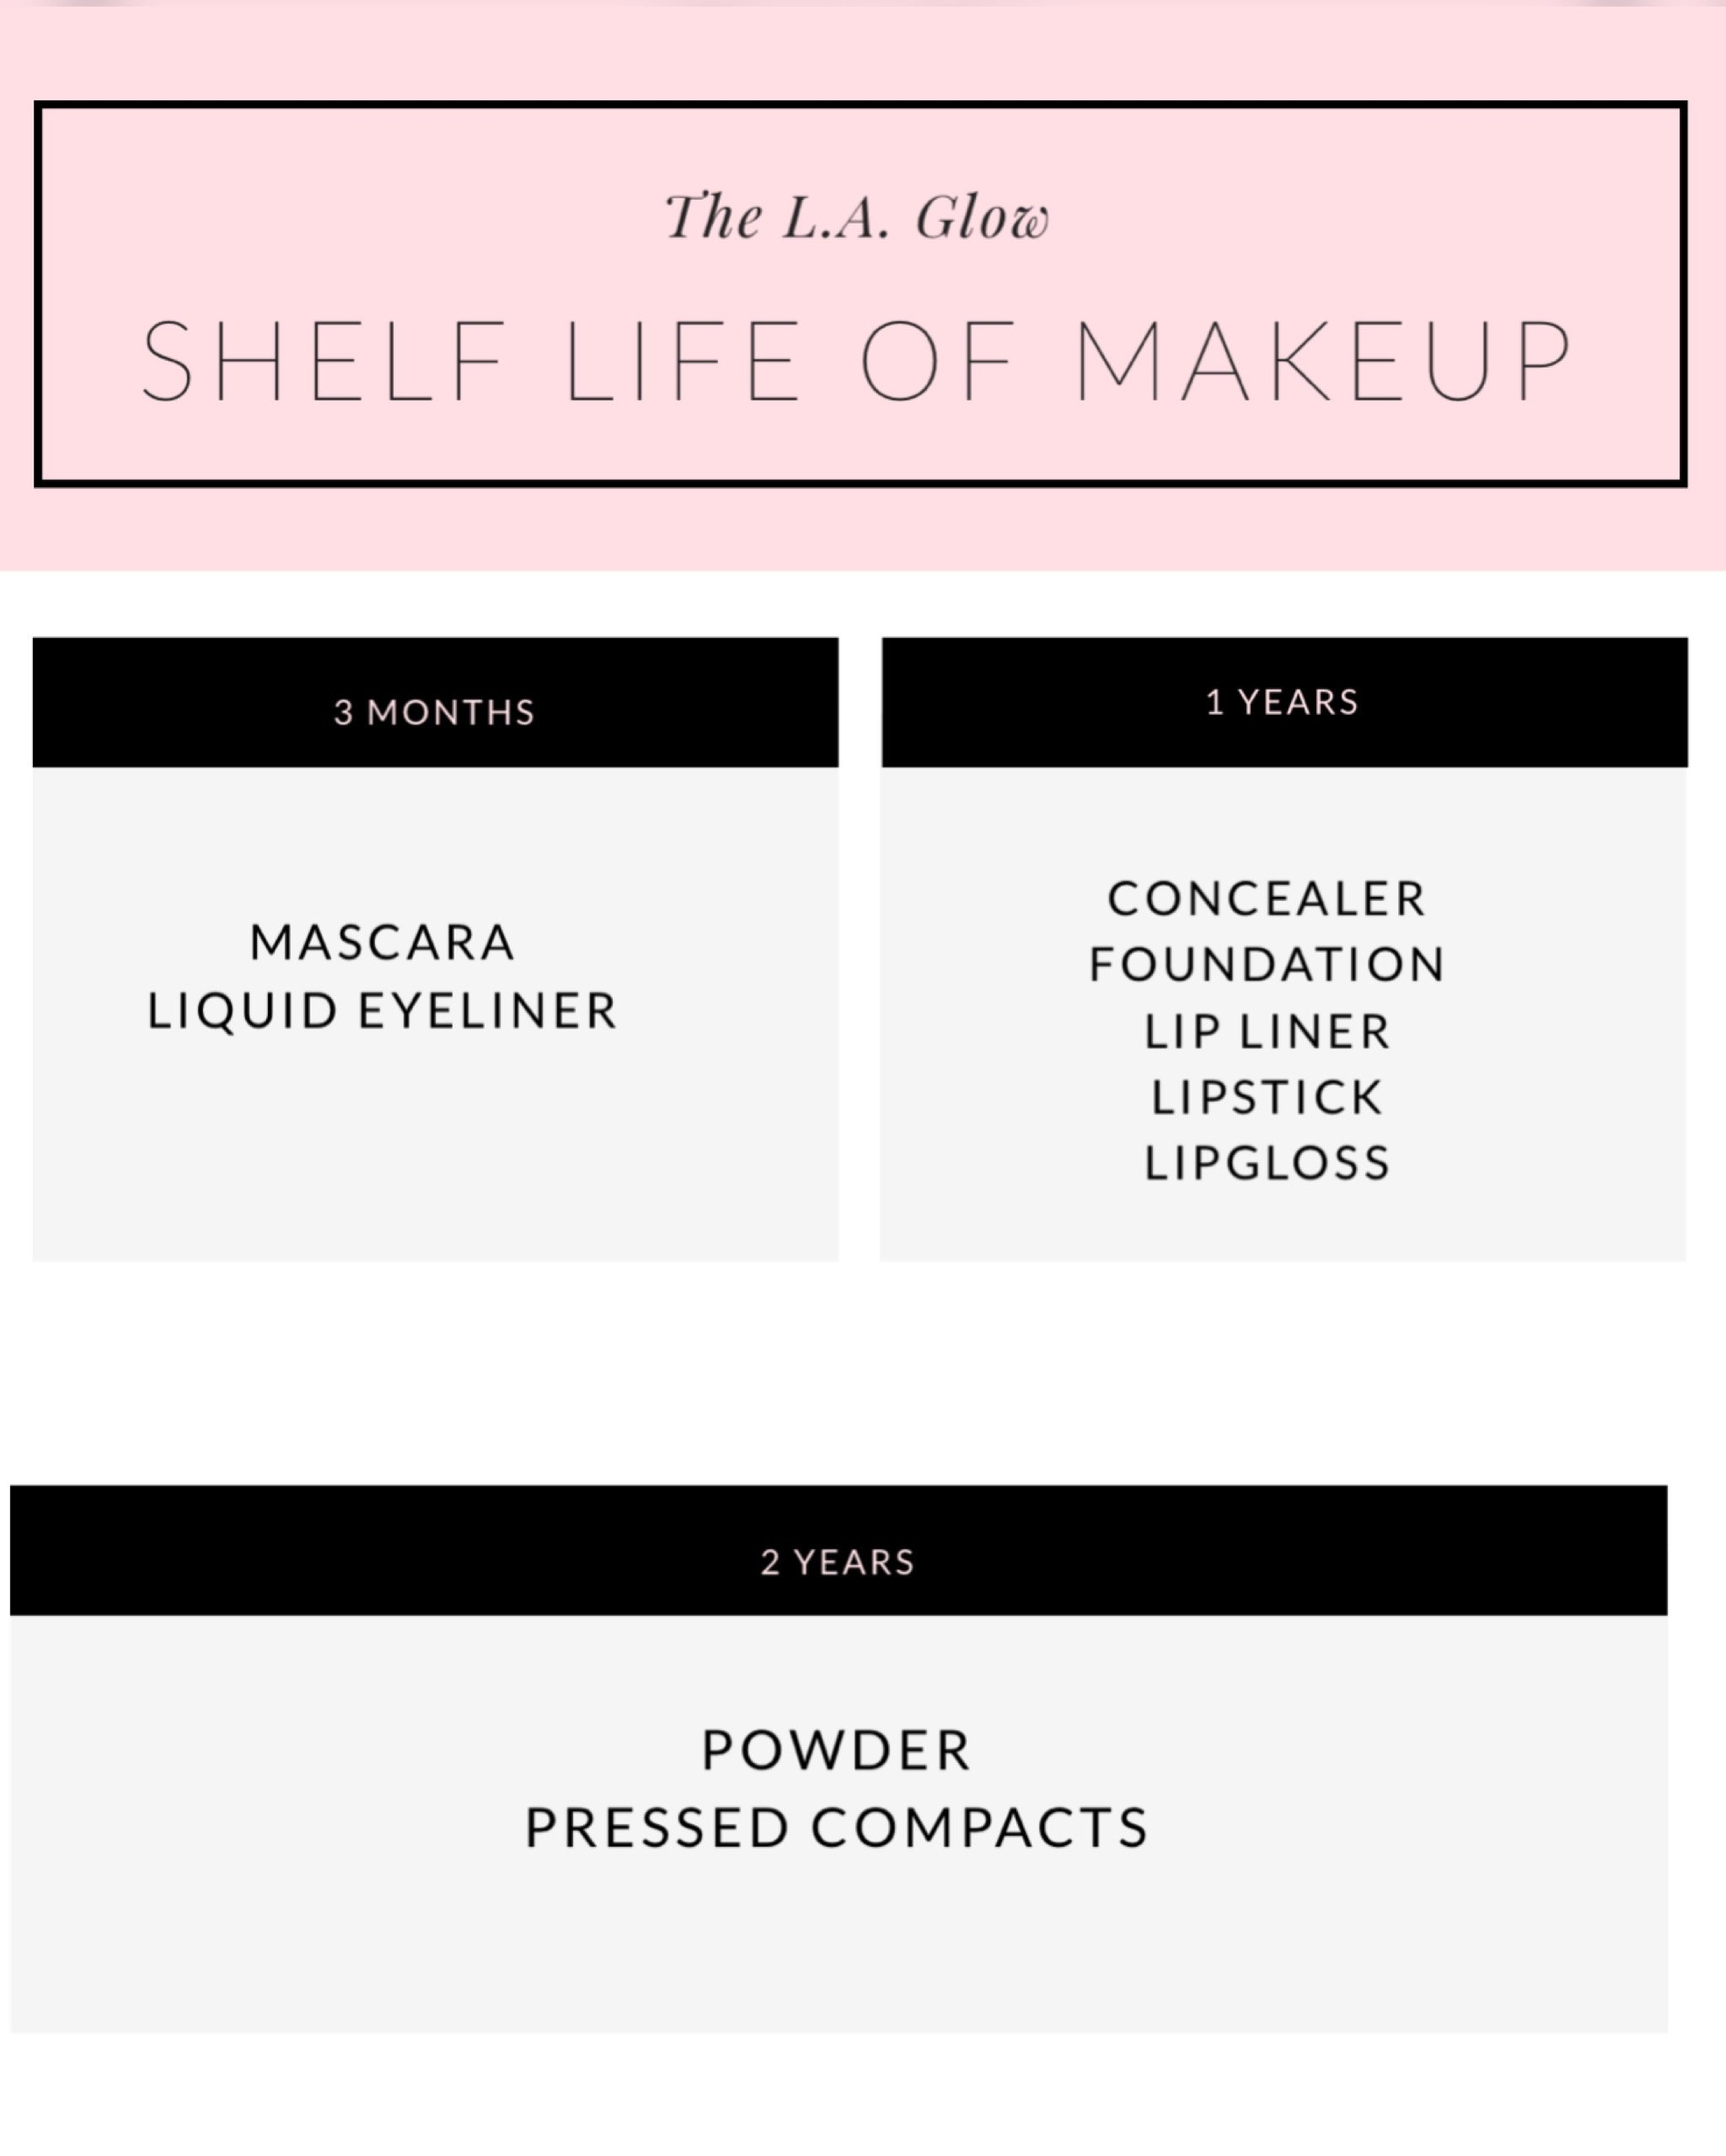 shelf life of makeup los angeles esthetician